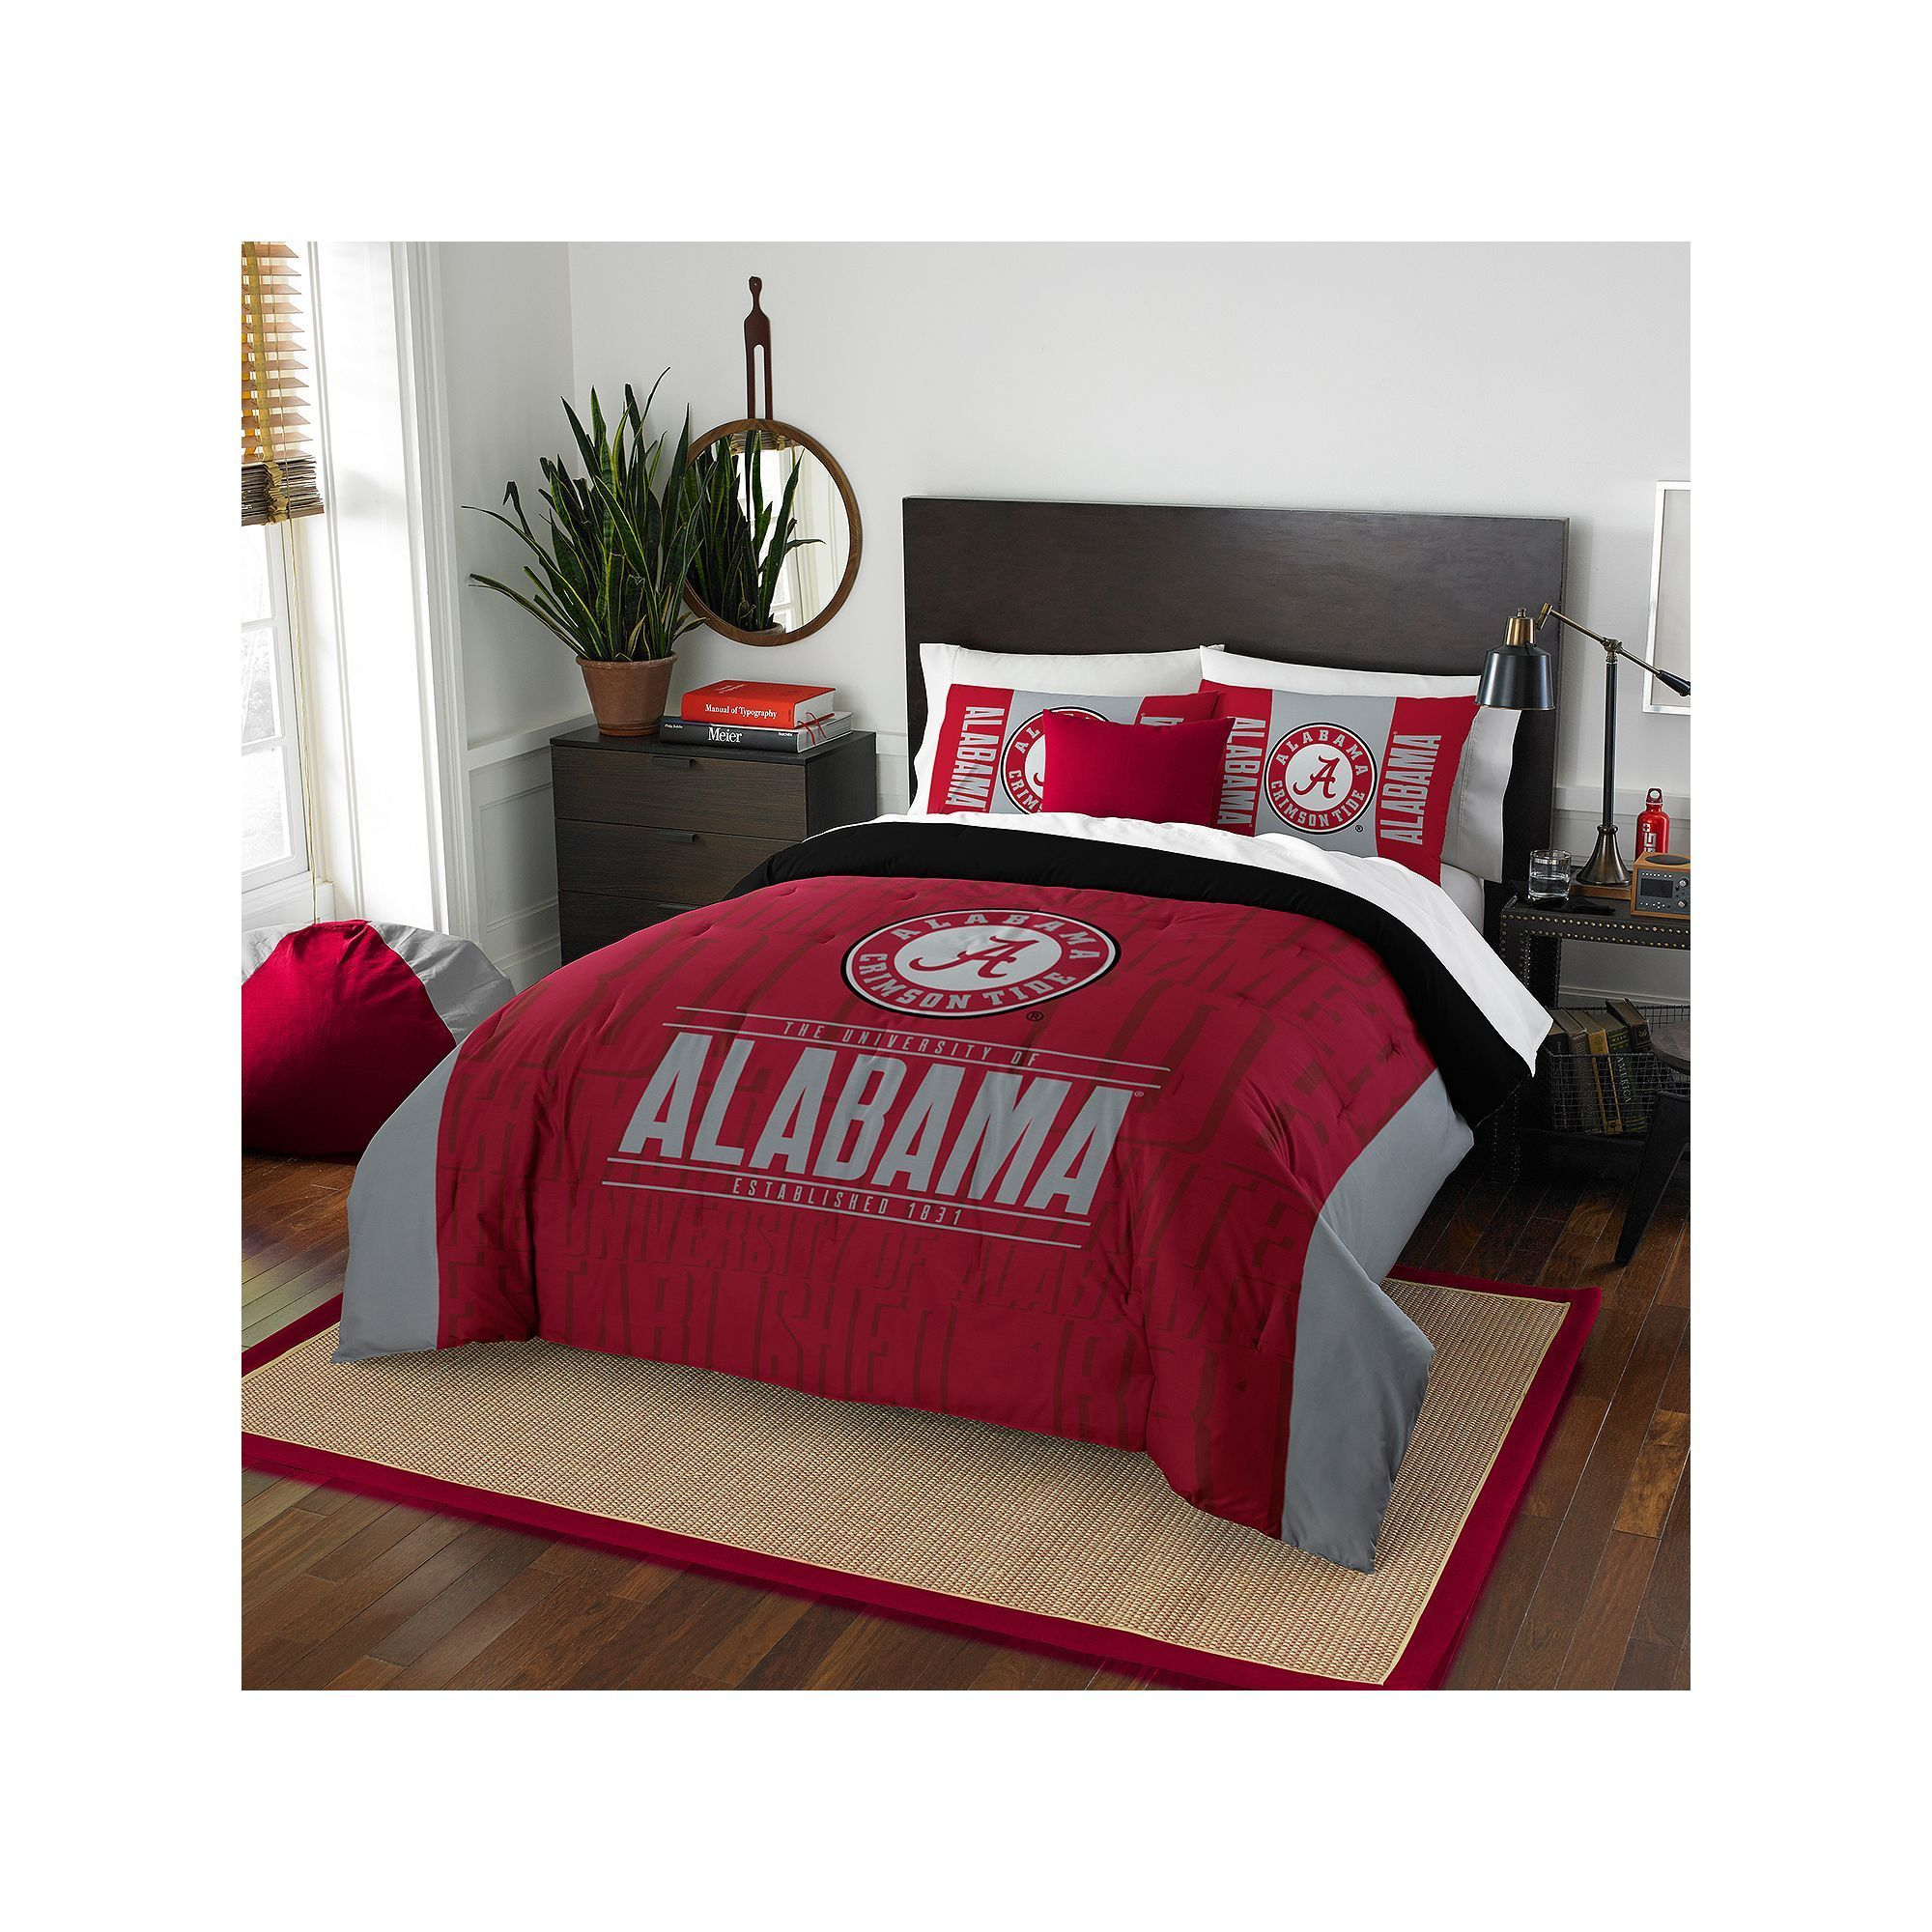 Pin On Alabama Crimson Tide Bedding